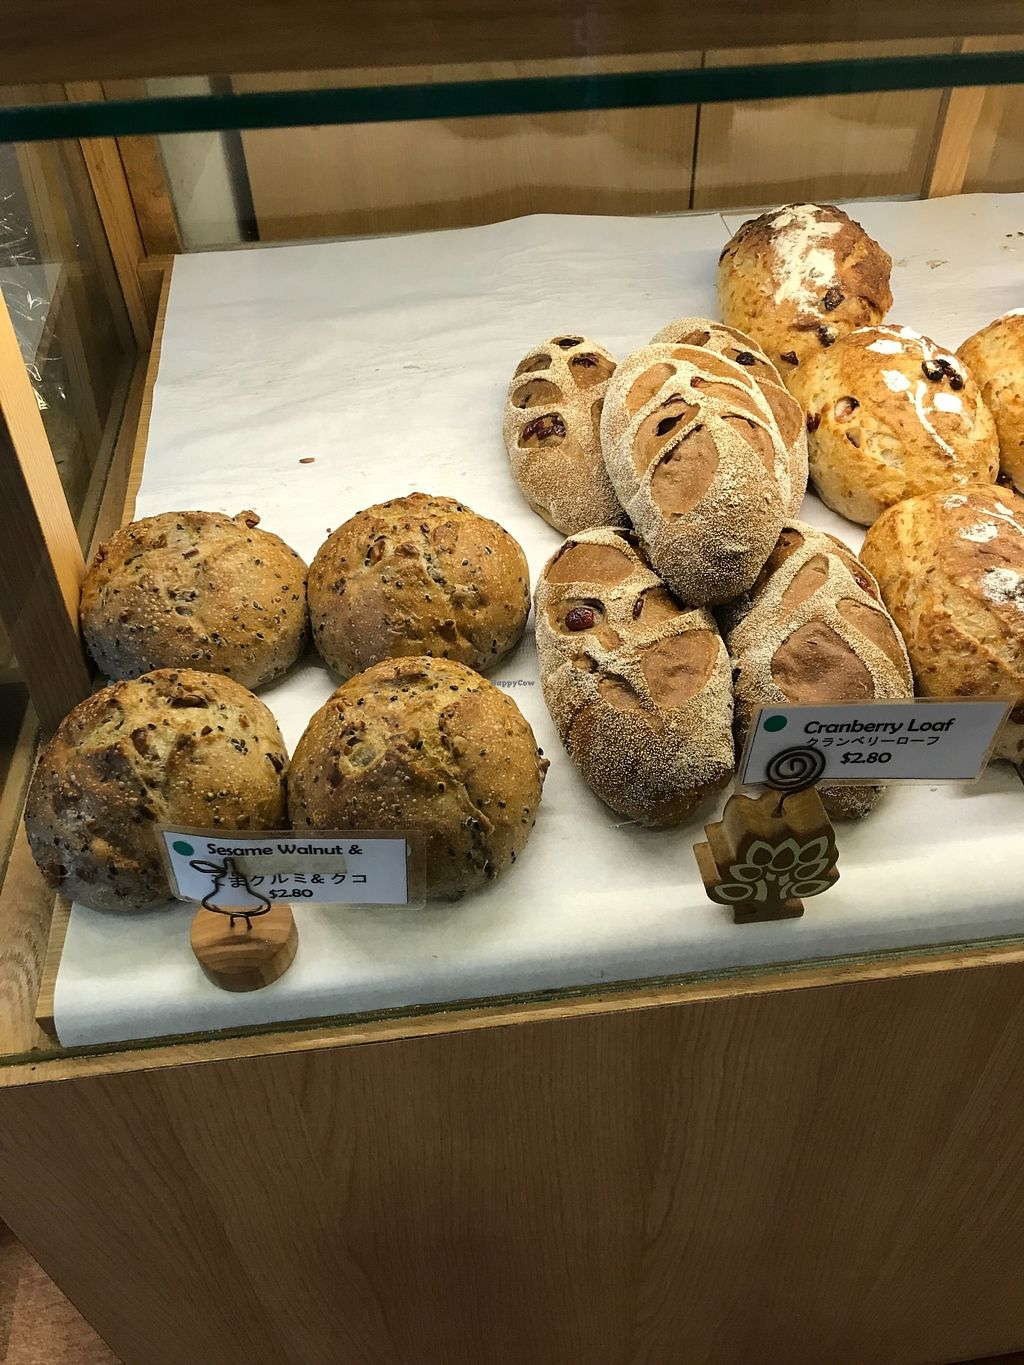 """Photo of Oishi Pan Bakery  by <a href=""""/members/profile/Sweetveganneko"""">Sweetveganneko</a> <br/>Interesting options <br/> April 6, 2018  - <a href='/contact/abuse/image/116954/381743'>Report</a>"""